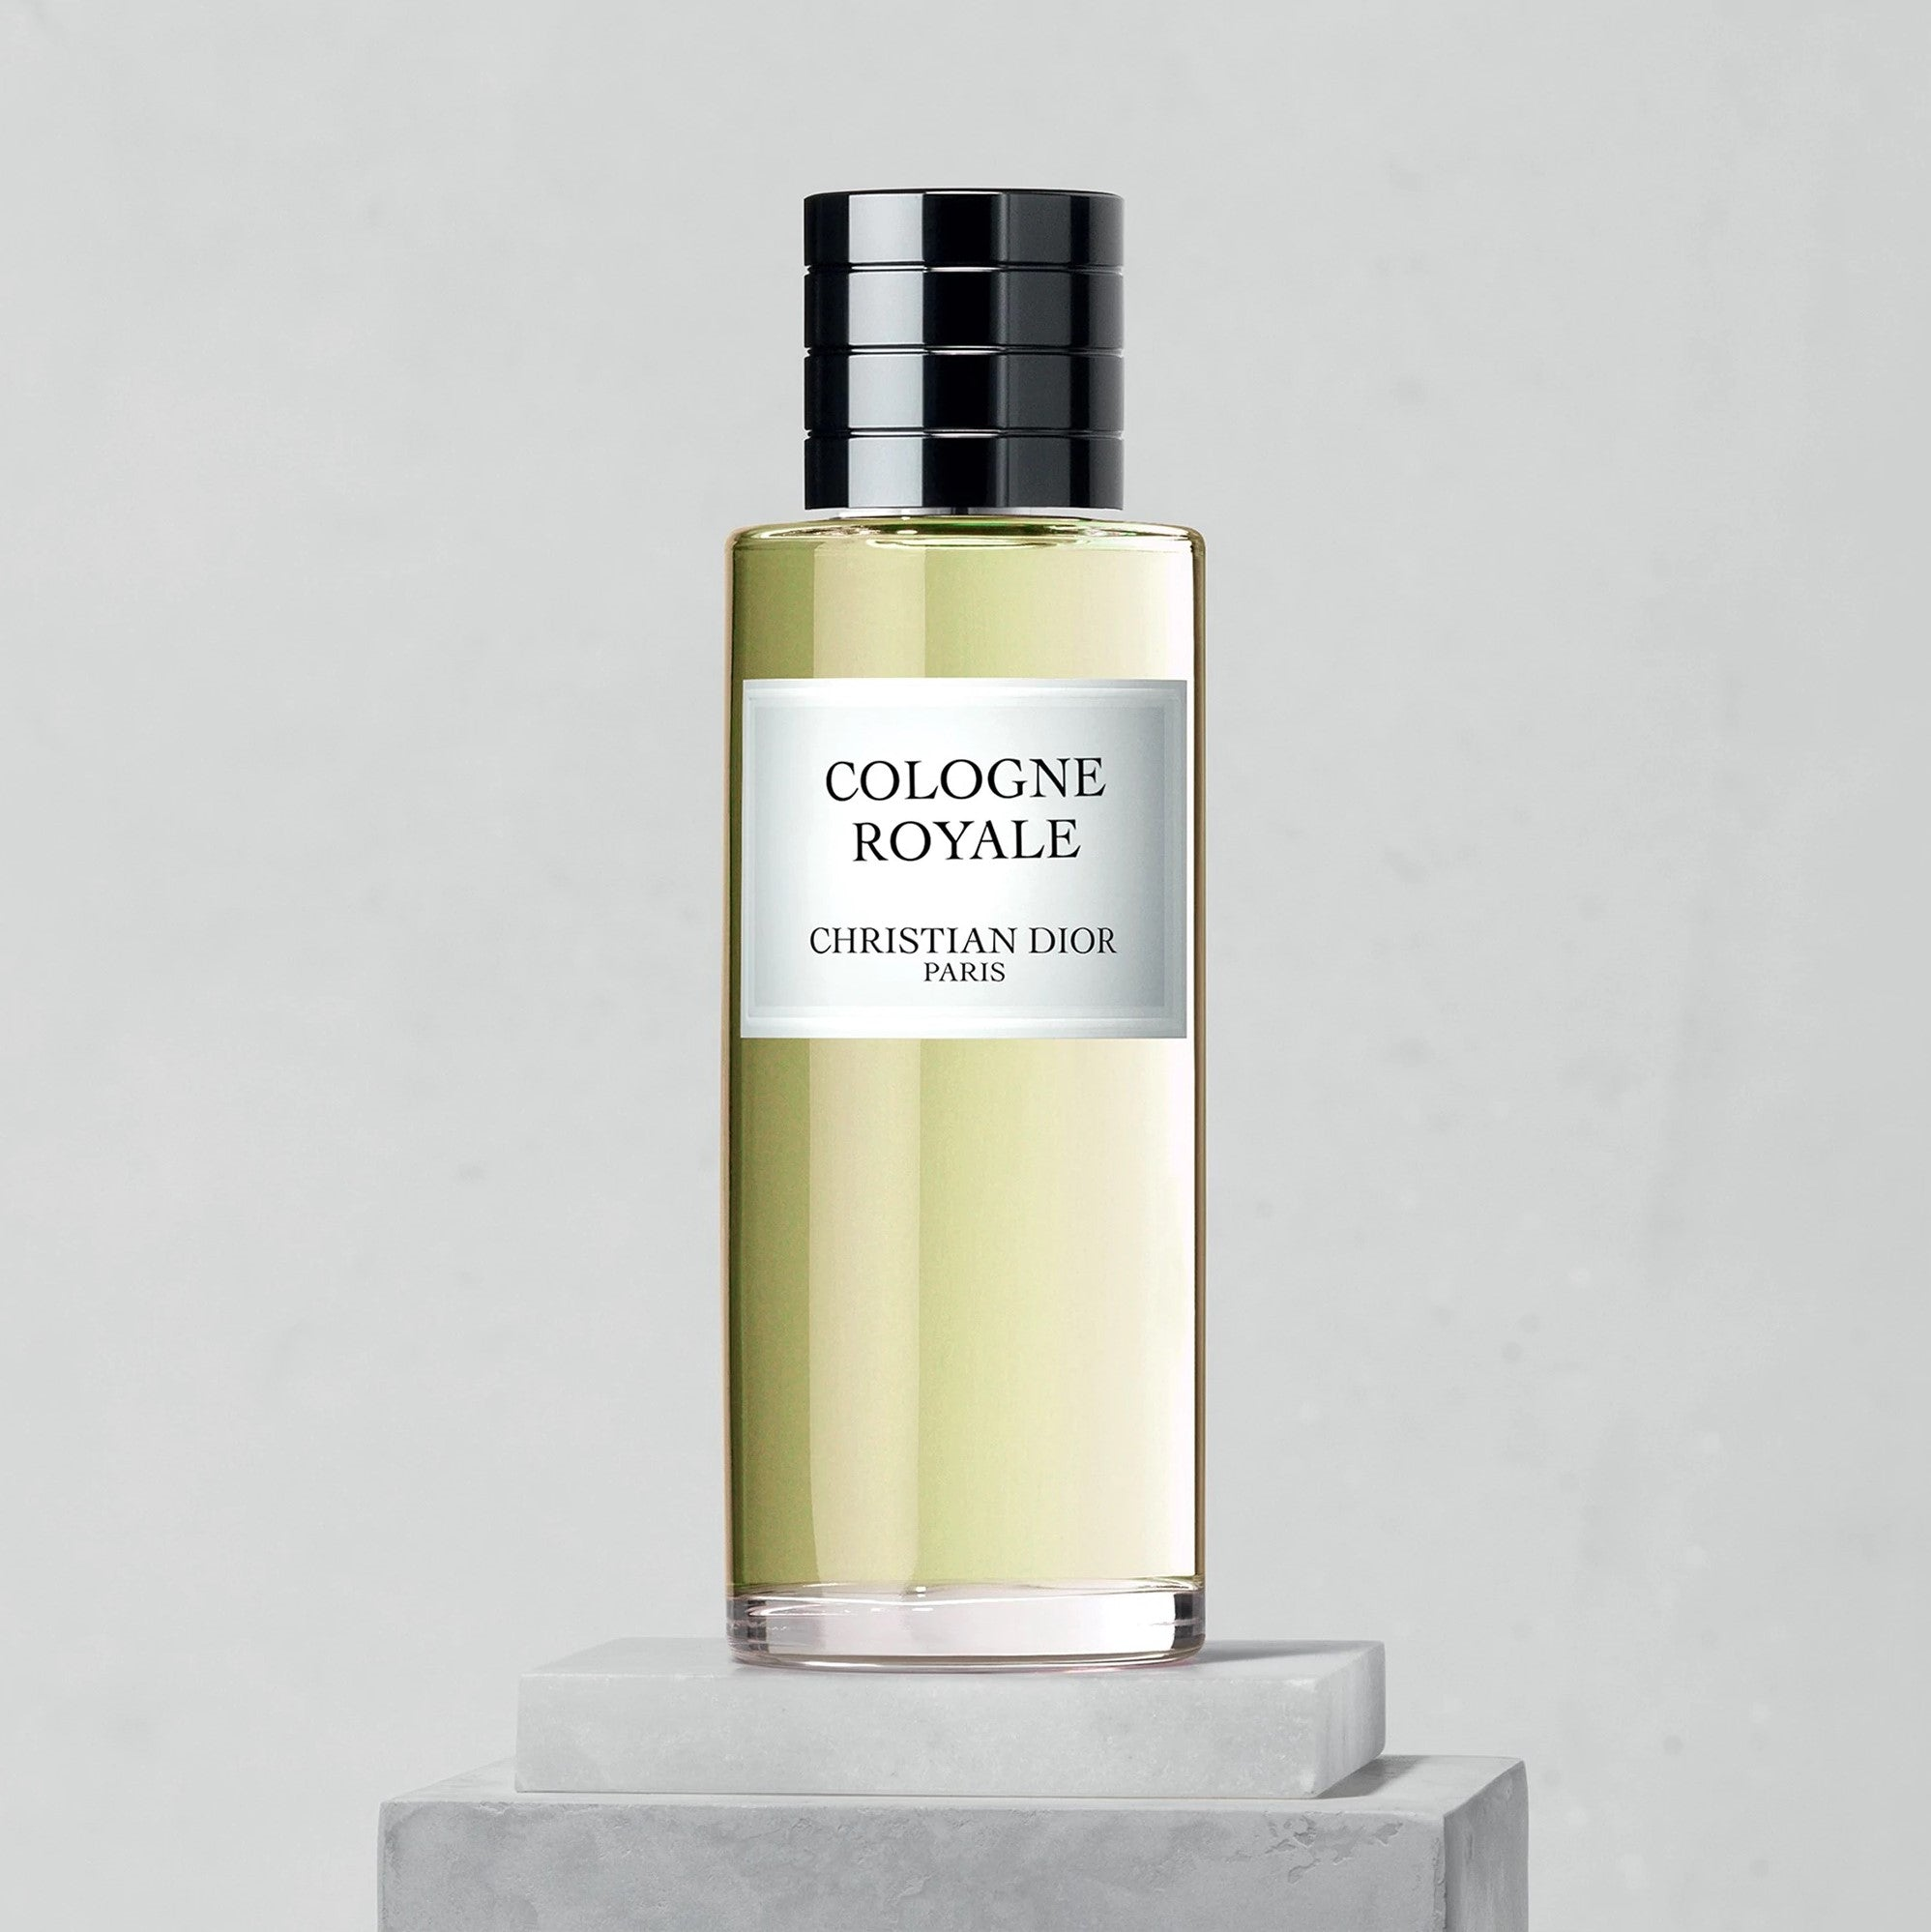 COLOGNE ROYALE | Fragrance